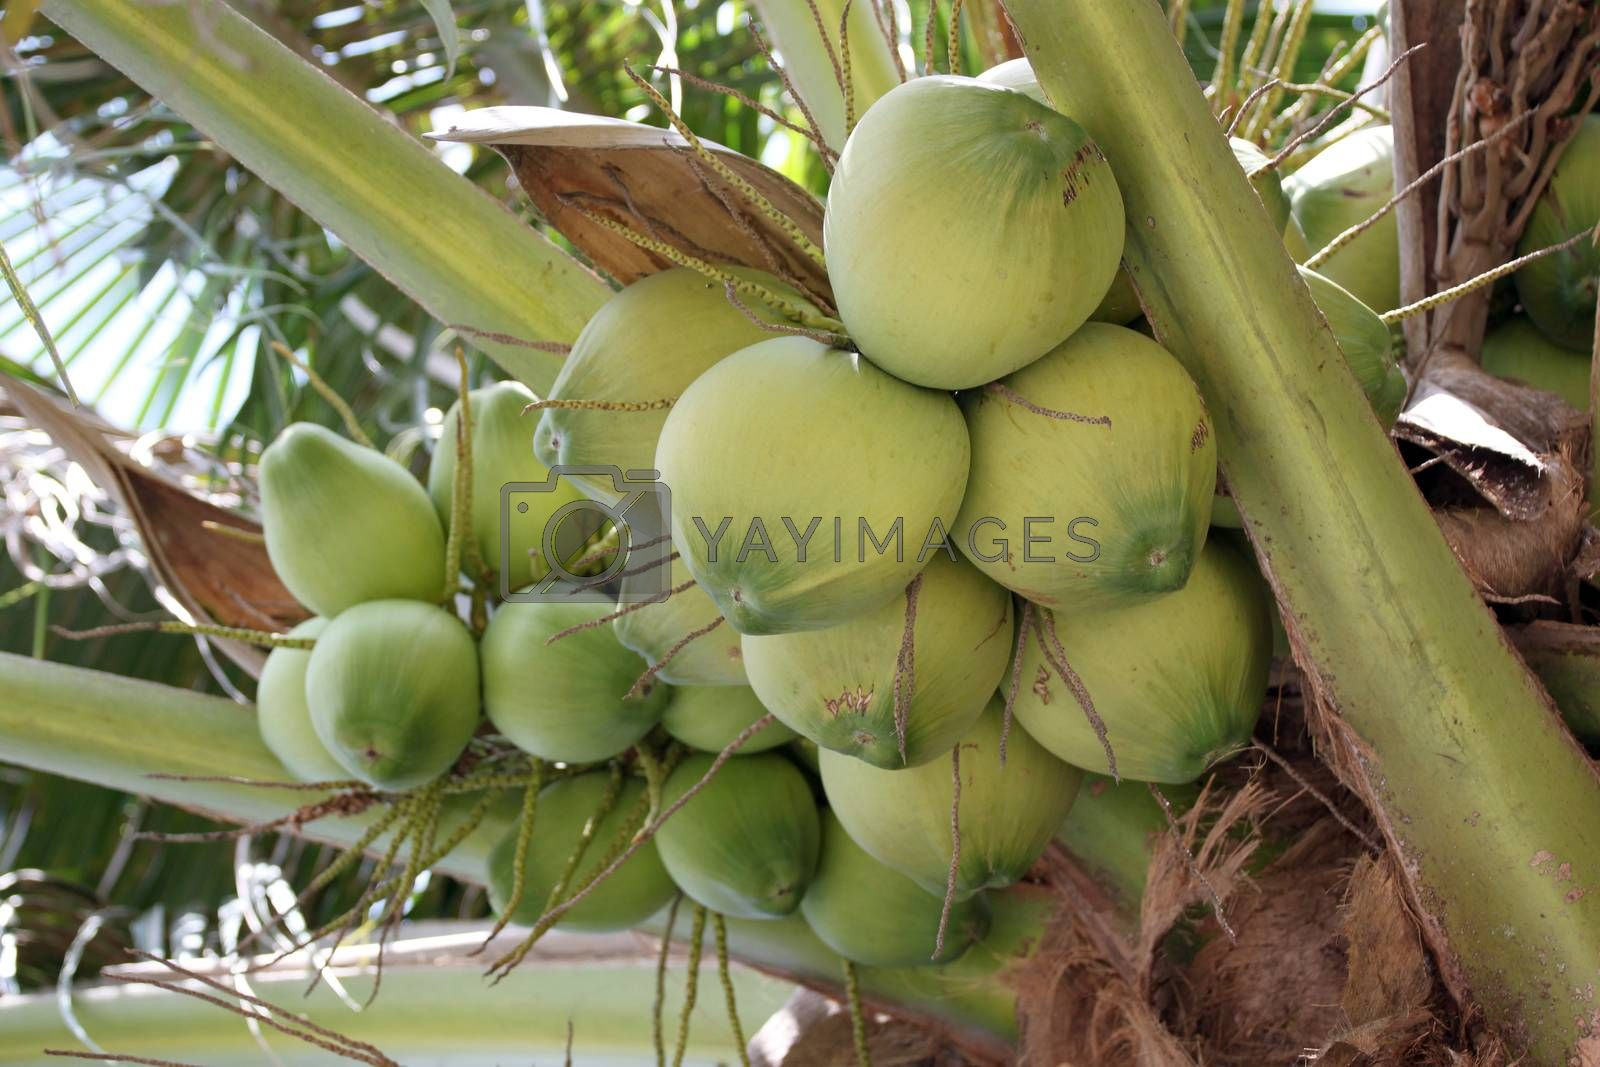 coconut trees are fruiting in the garden.